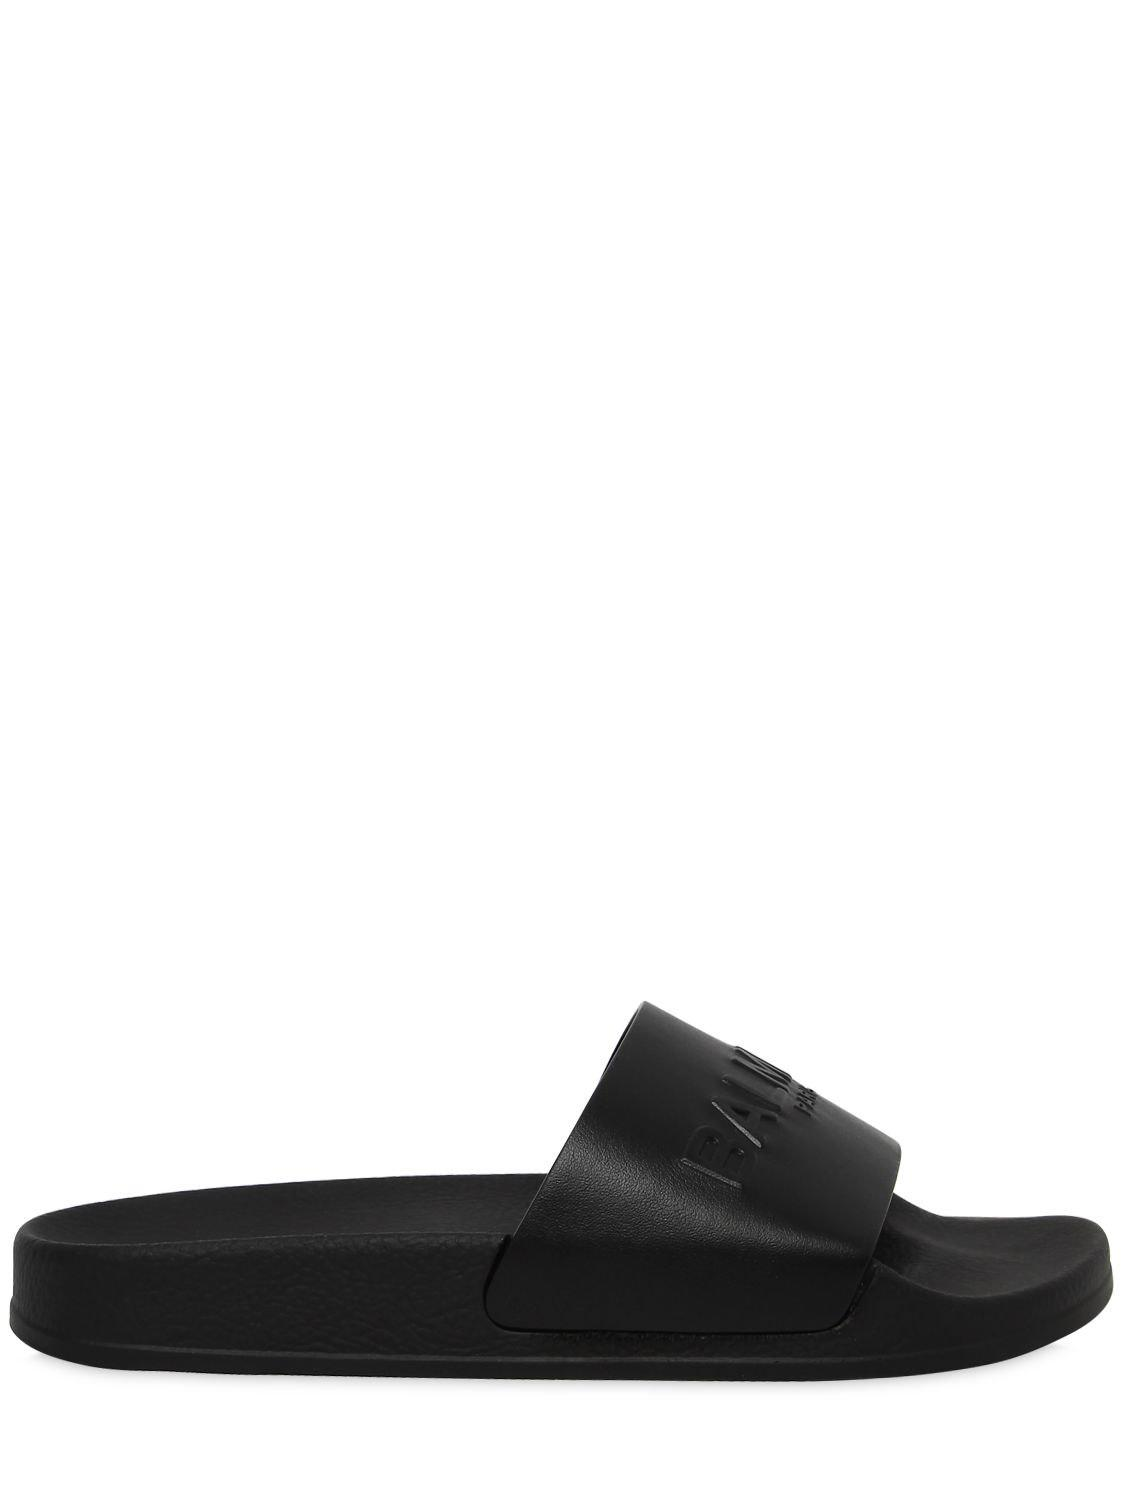 Balmain Shoes, Leather Calypso Women's Slide Sandals